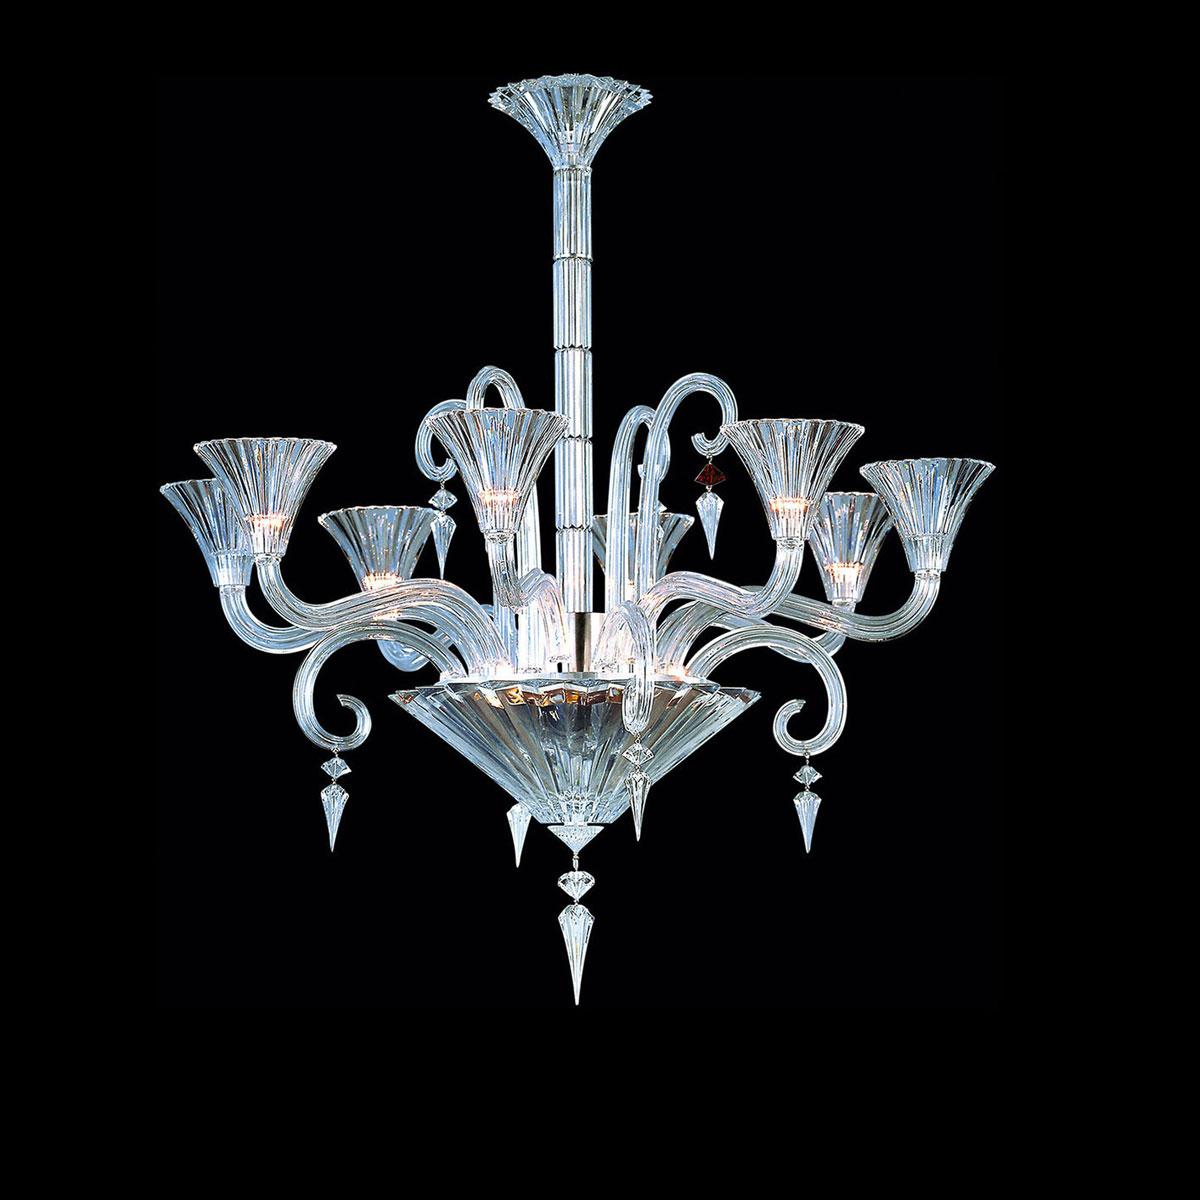 Baccarat Crystal, Mille Nuits 8 Light Chandelier